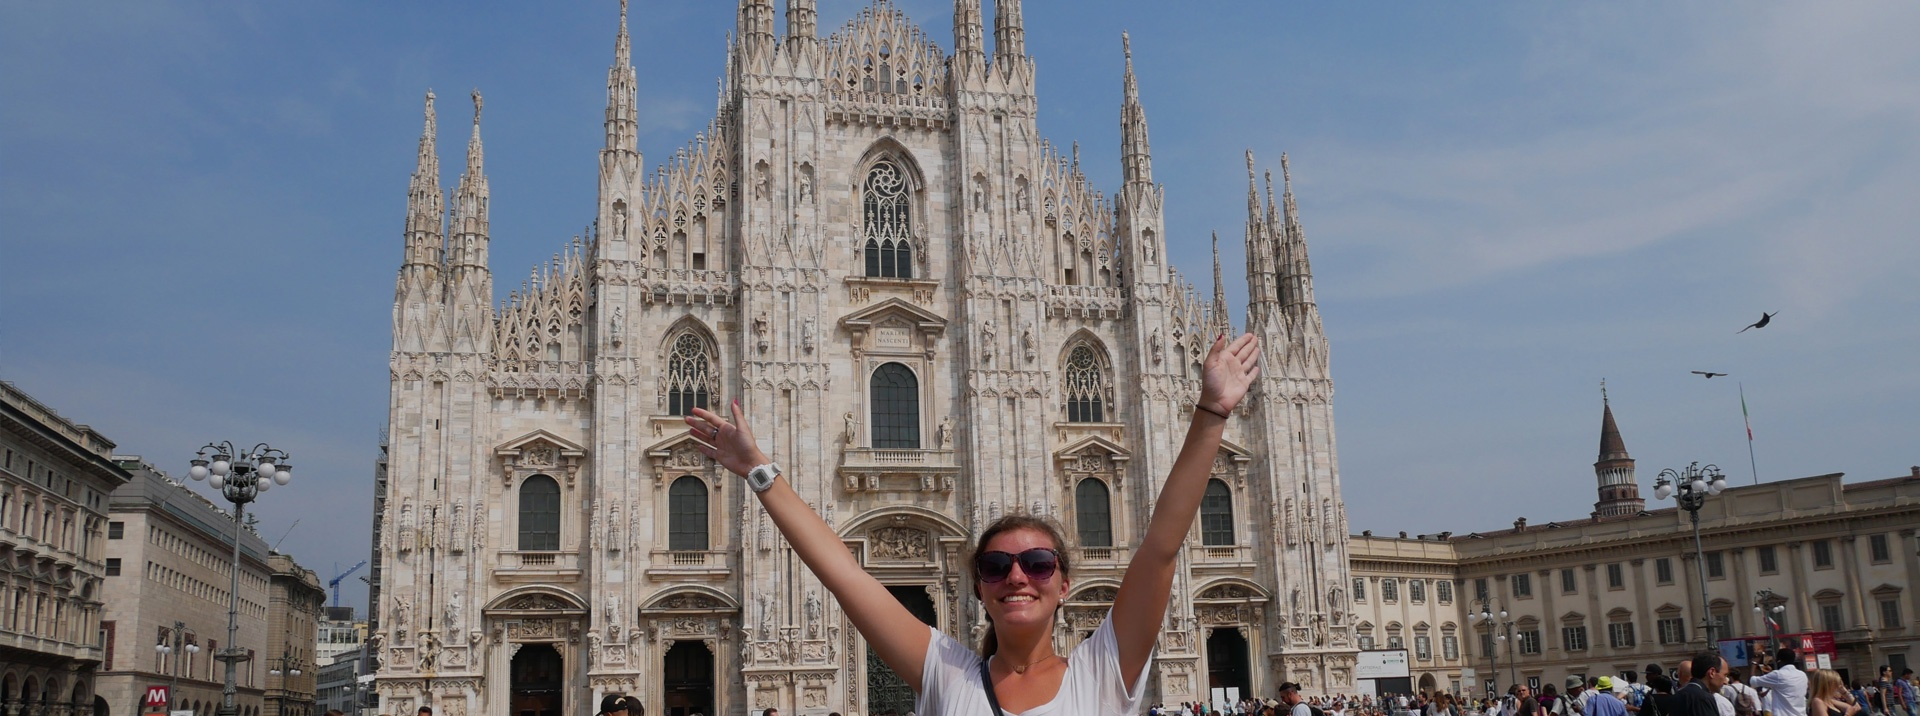 Milan intern standing in front of the Duomo di Milano